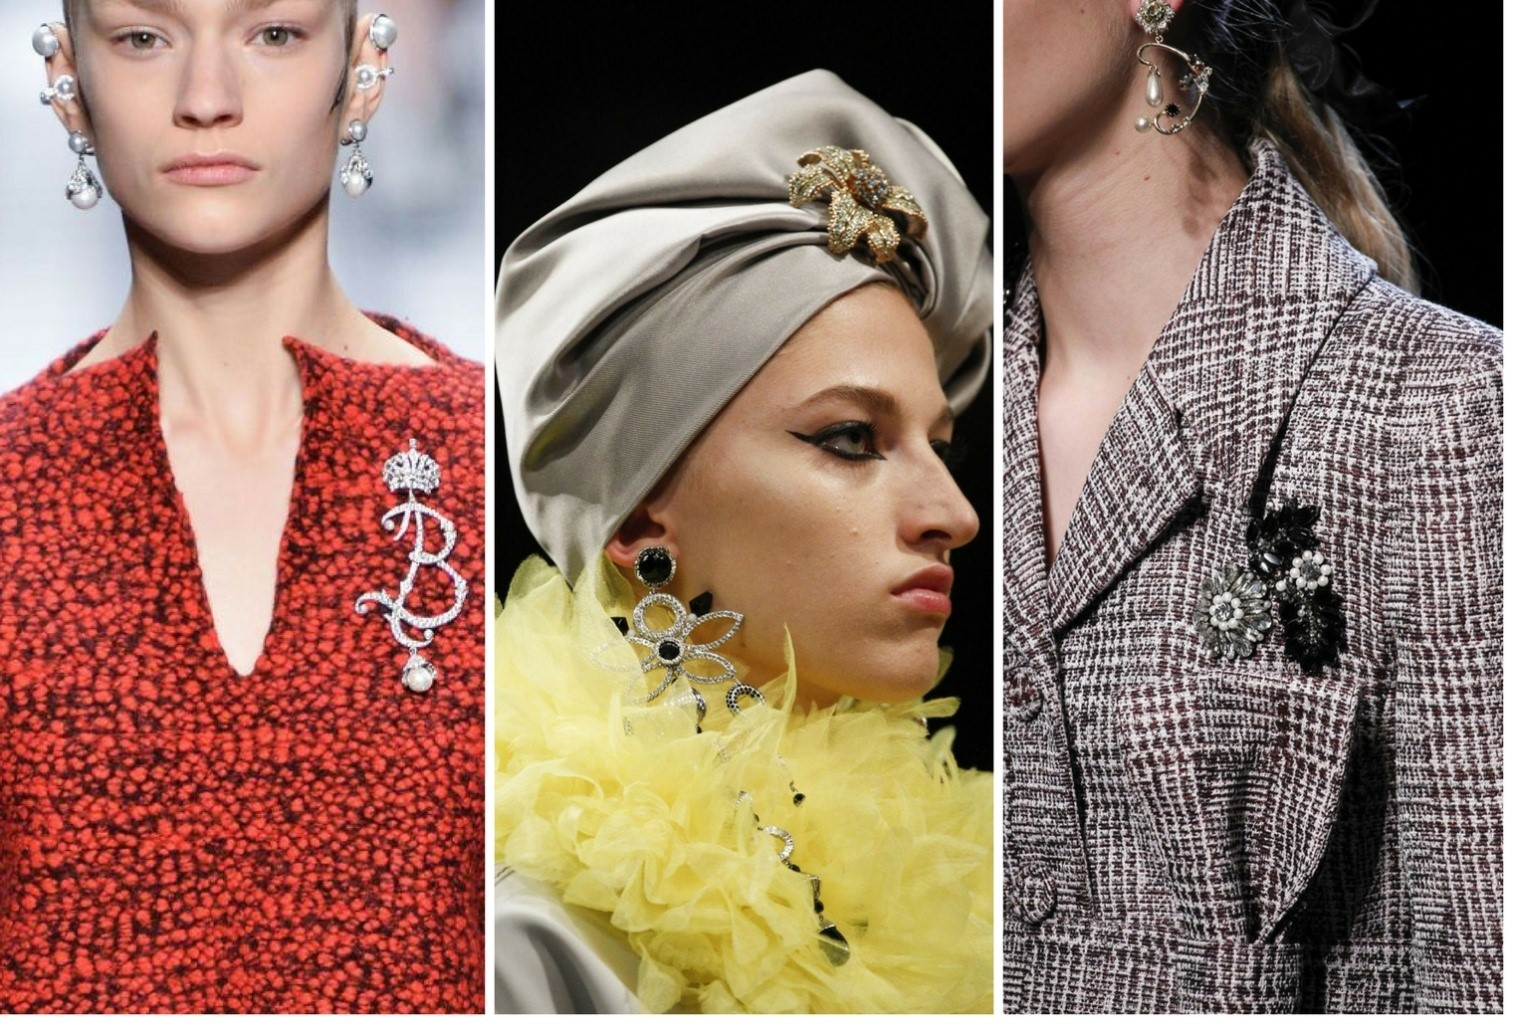 Balenciaga/Marc Jacobs/Erdem Images courtesy: Vogue and Getty Images jewellery trends for 2018 - Neo brooches - Jewellery trends for 2018 – Bangalore